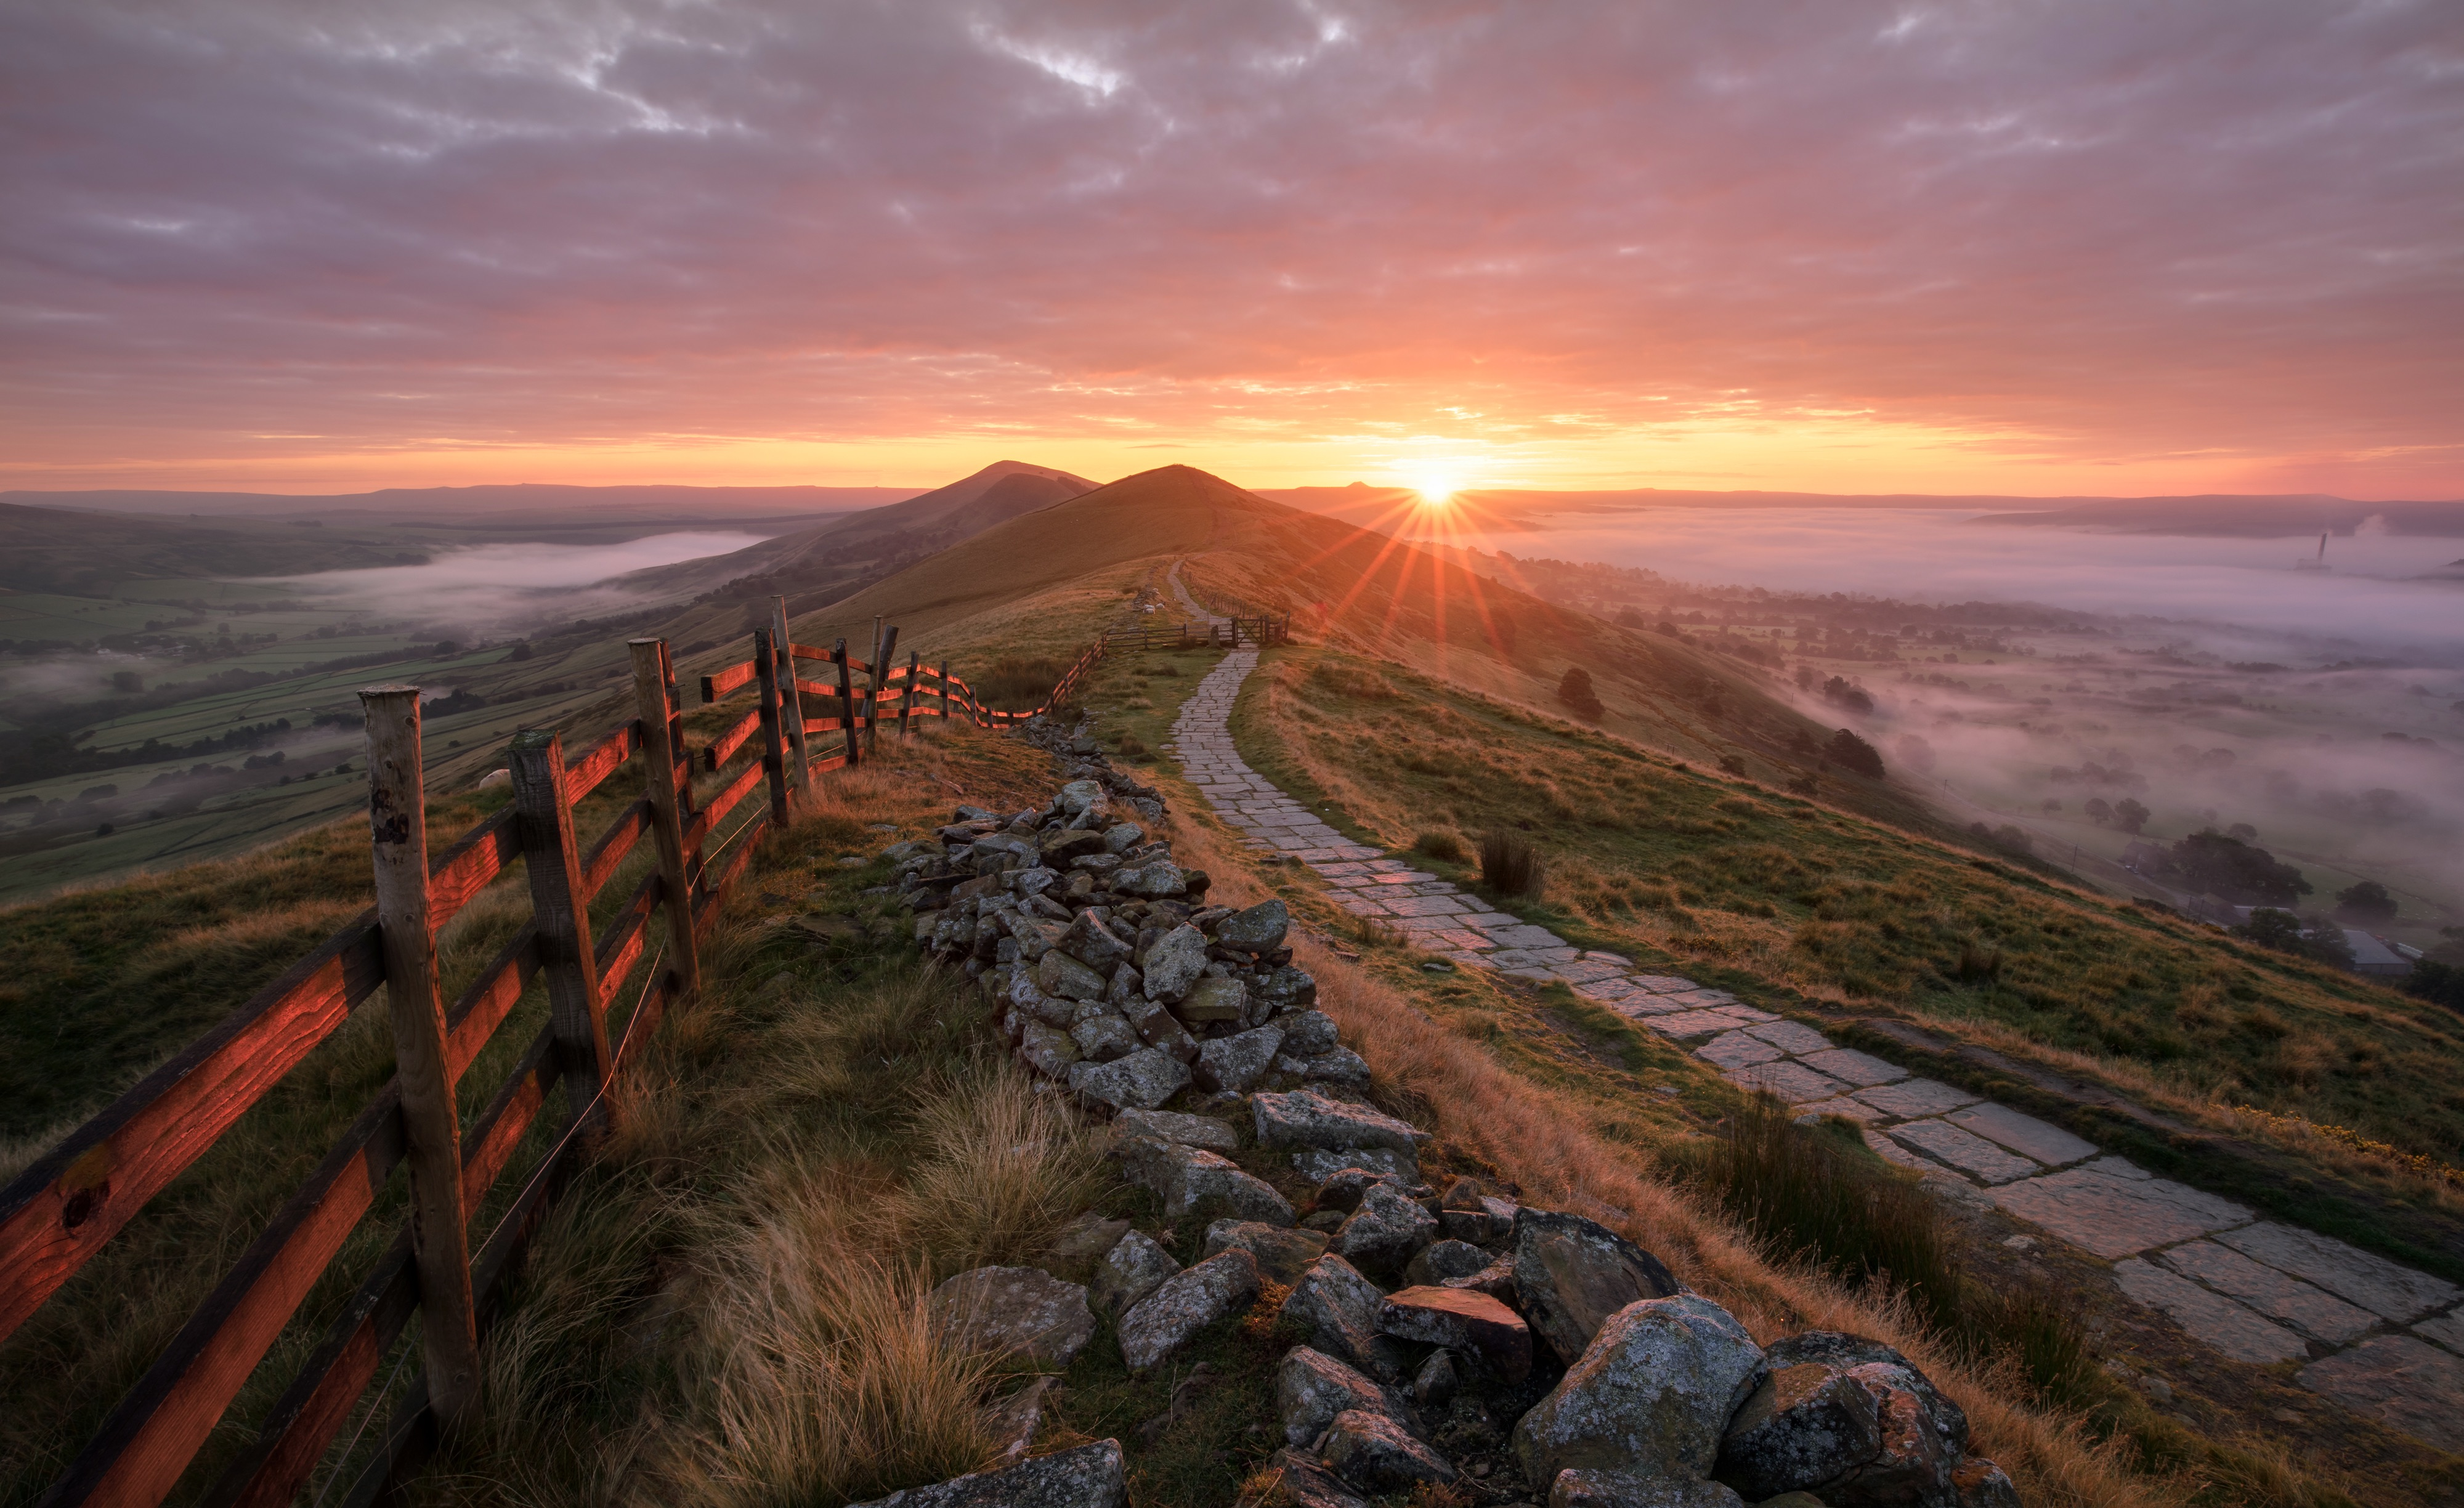 Sunrise and mist at Mam Tor in the Peak District.